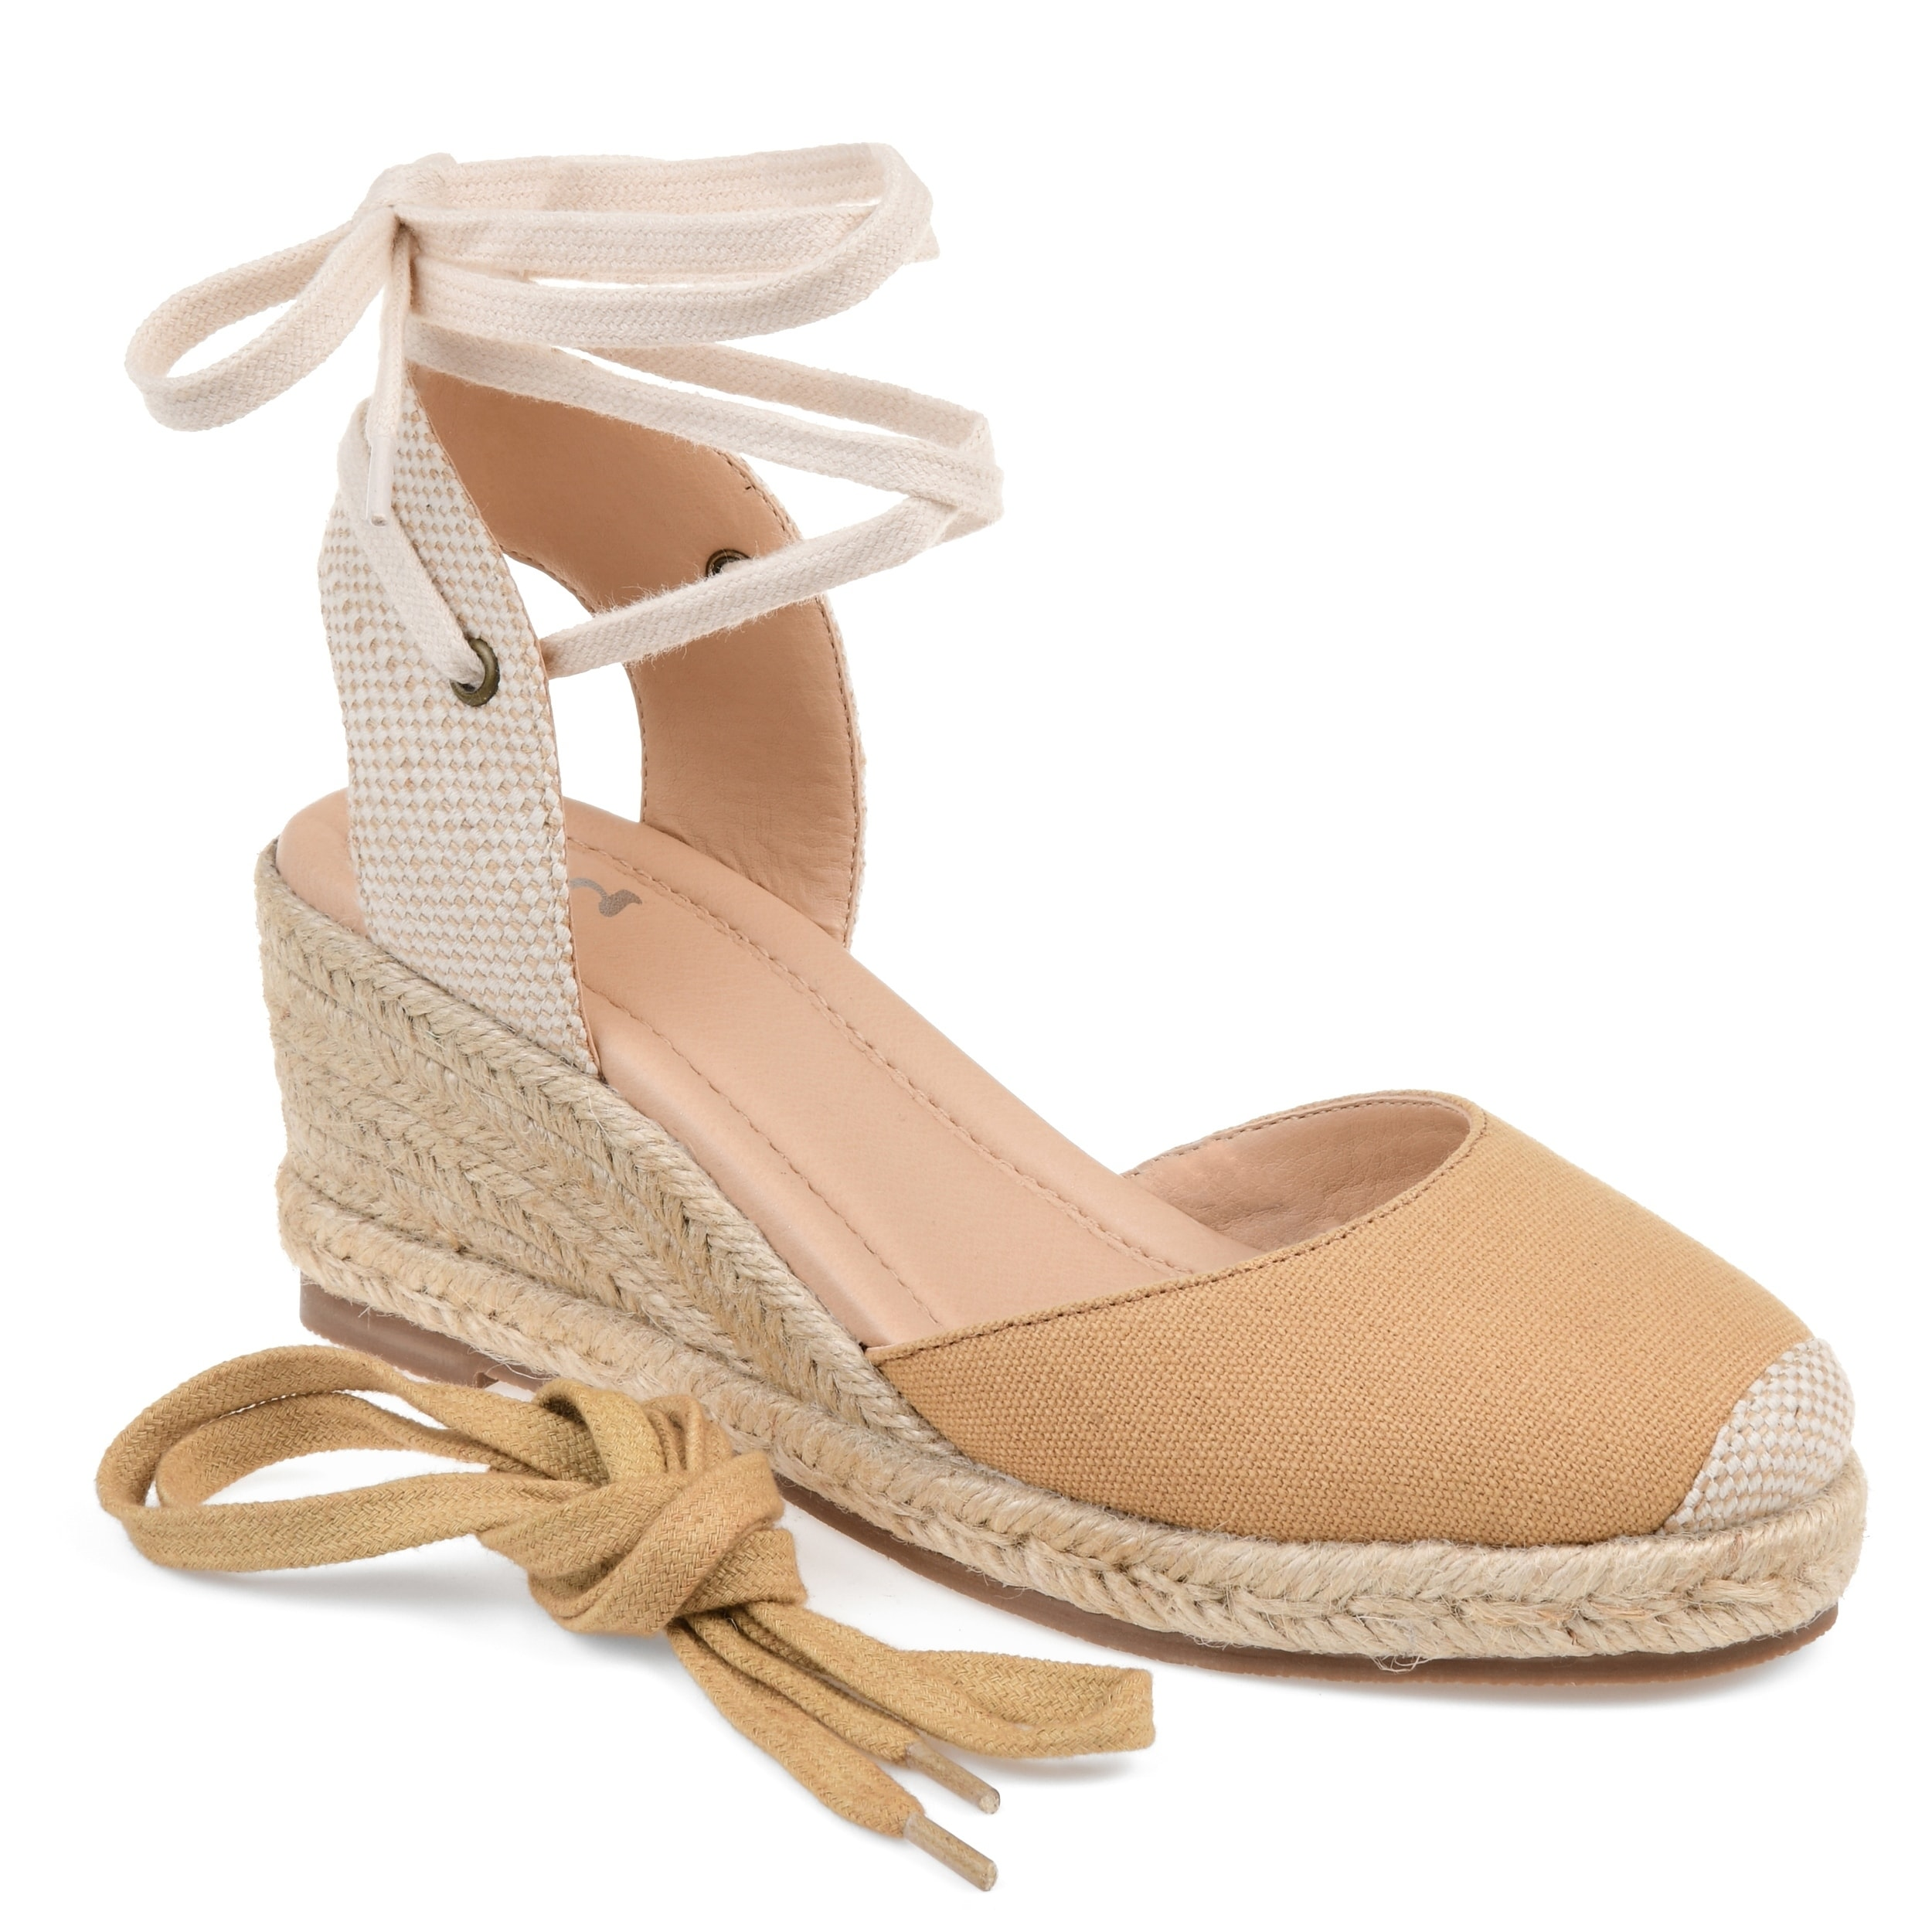 674ab82ff8f Journee Collection Women's Comfort Monte Wedge